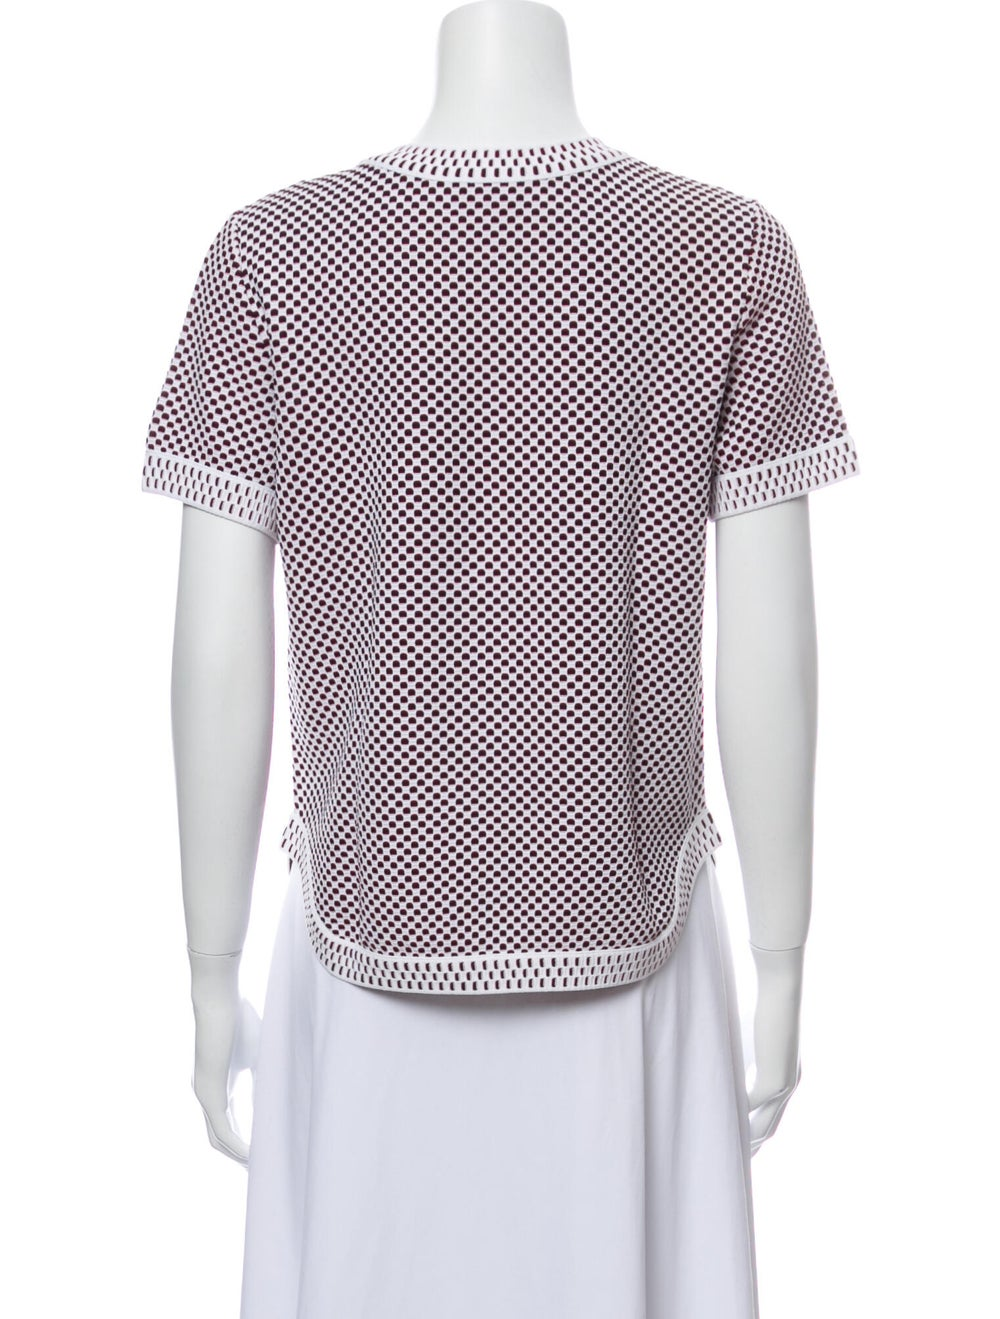 Chanel 2014 Short Sleeve Knit Top T-Shirt - image 3